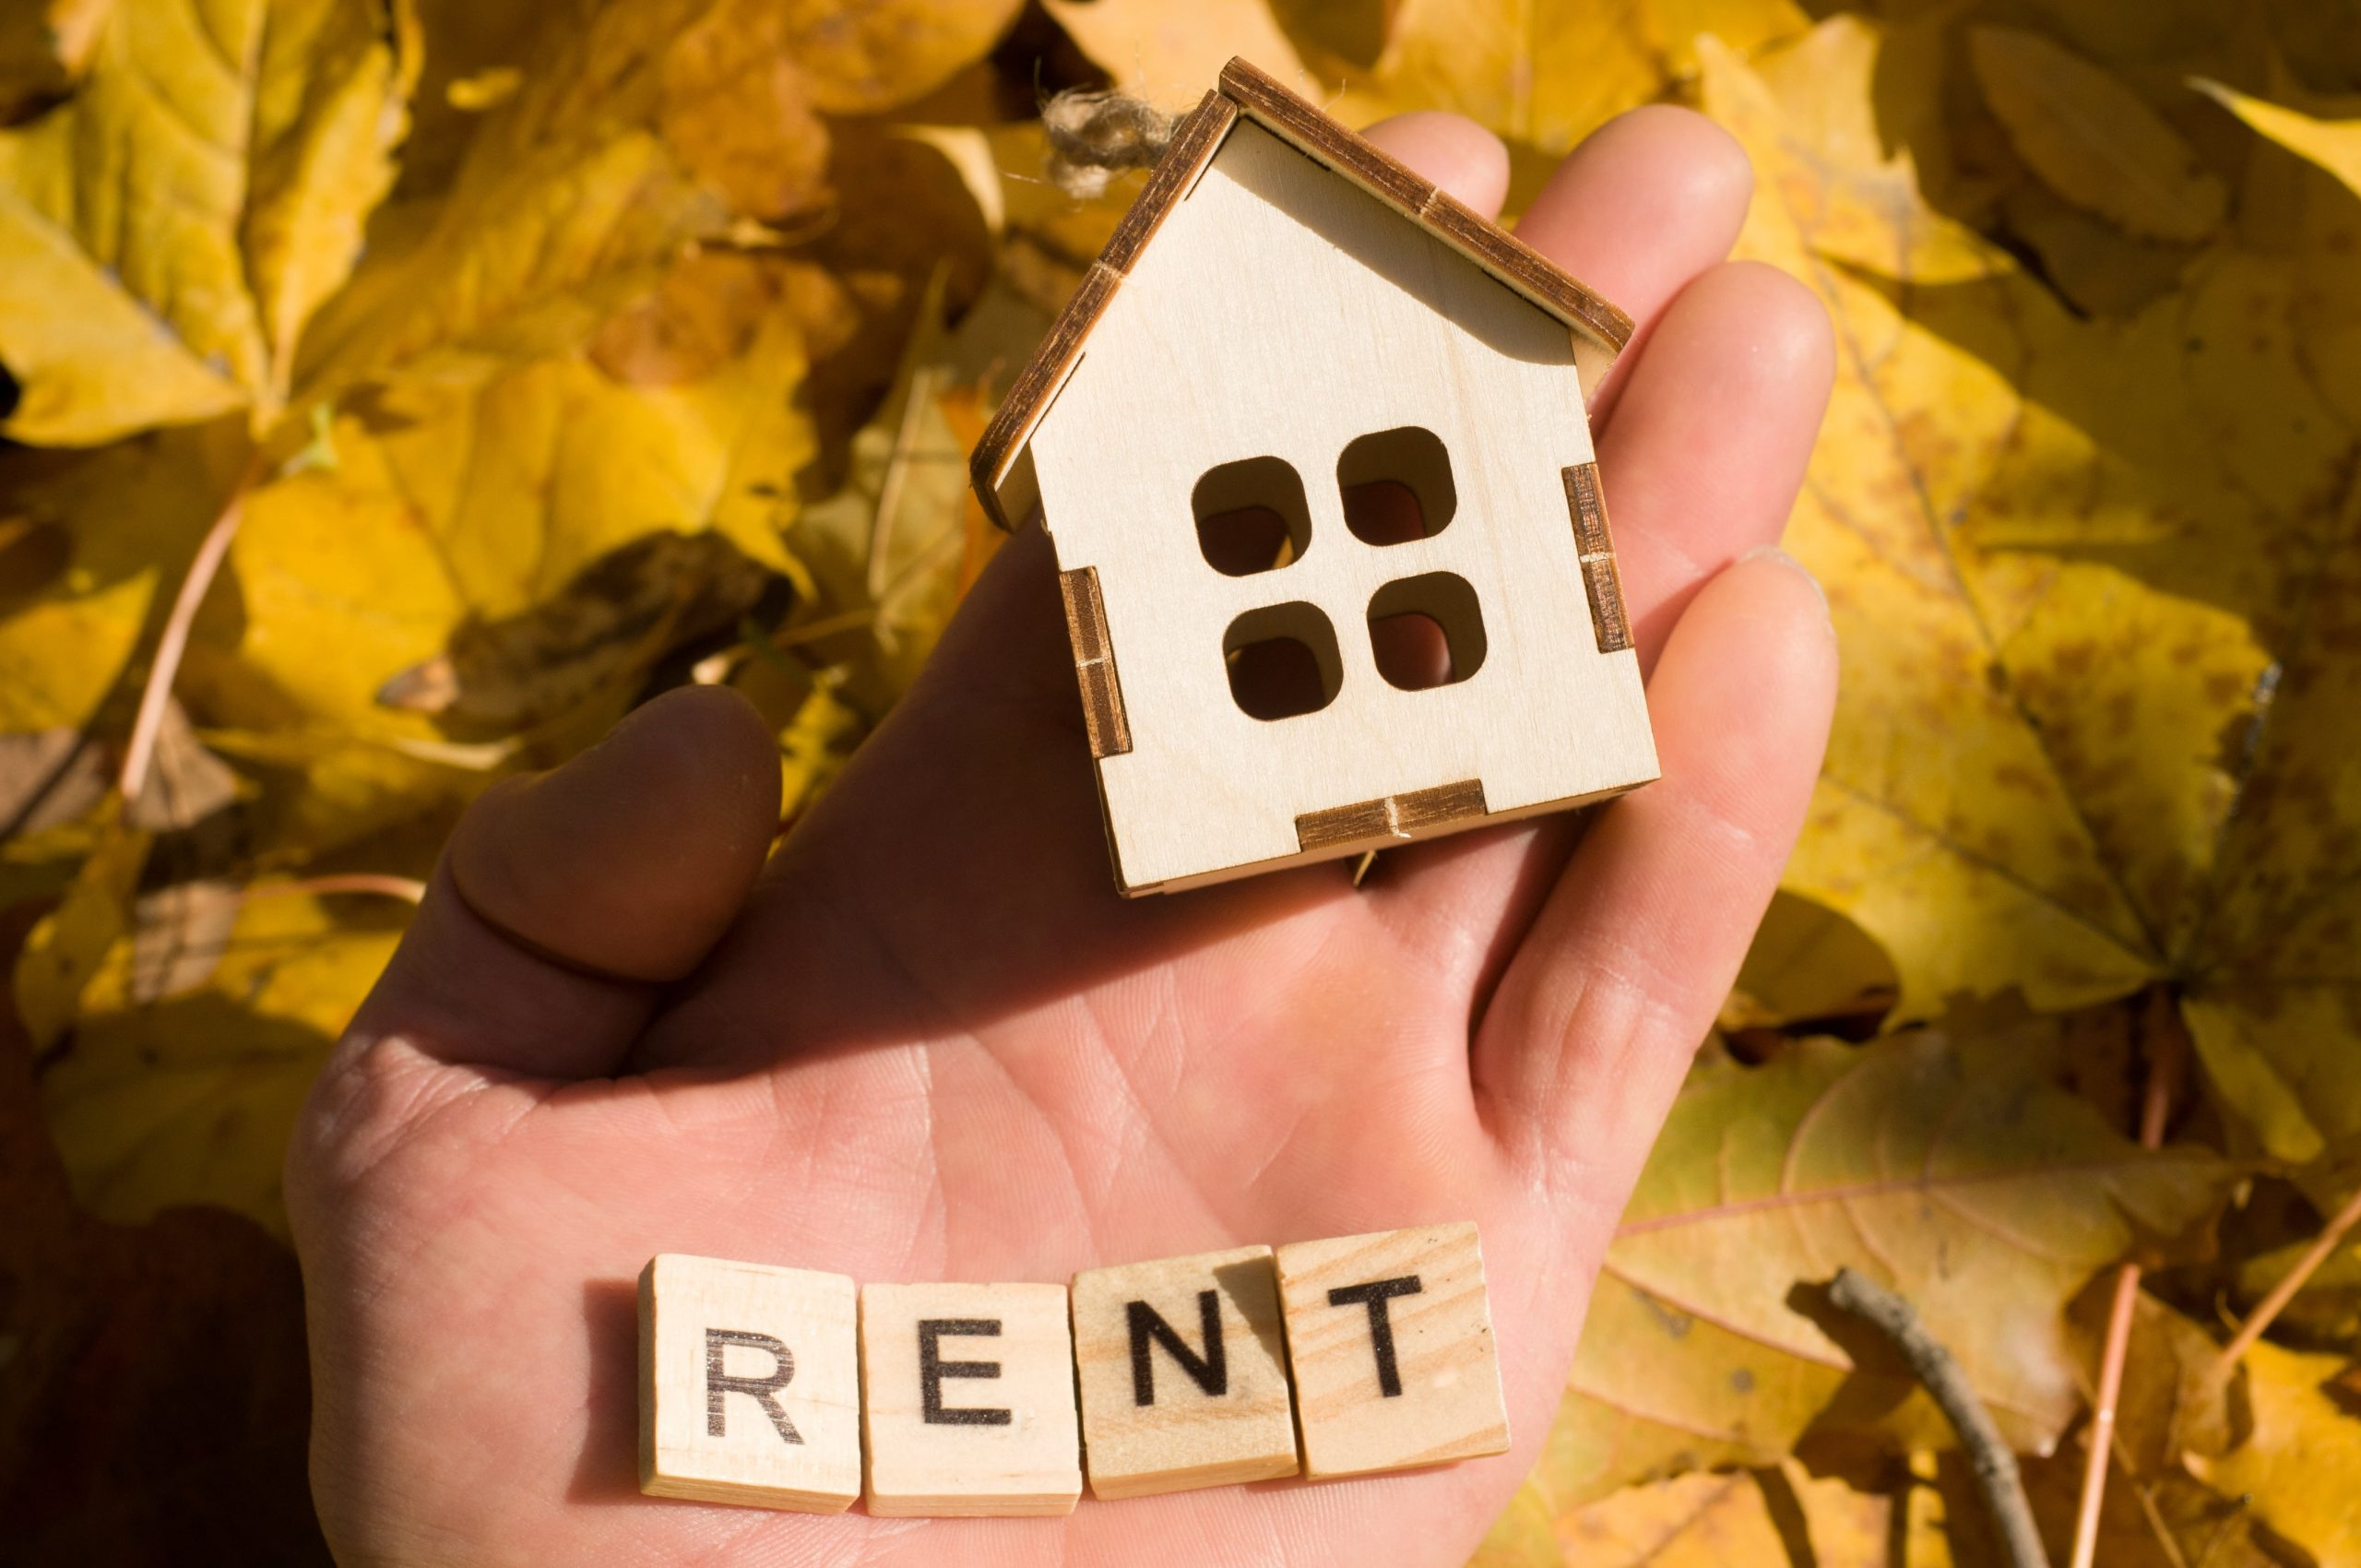 Renting vs. Buying a Home, the Pros and Cons to Consider